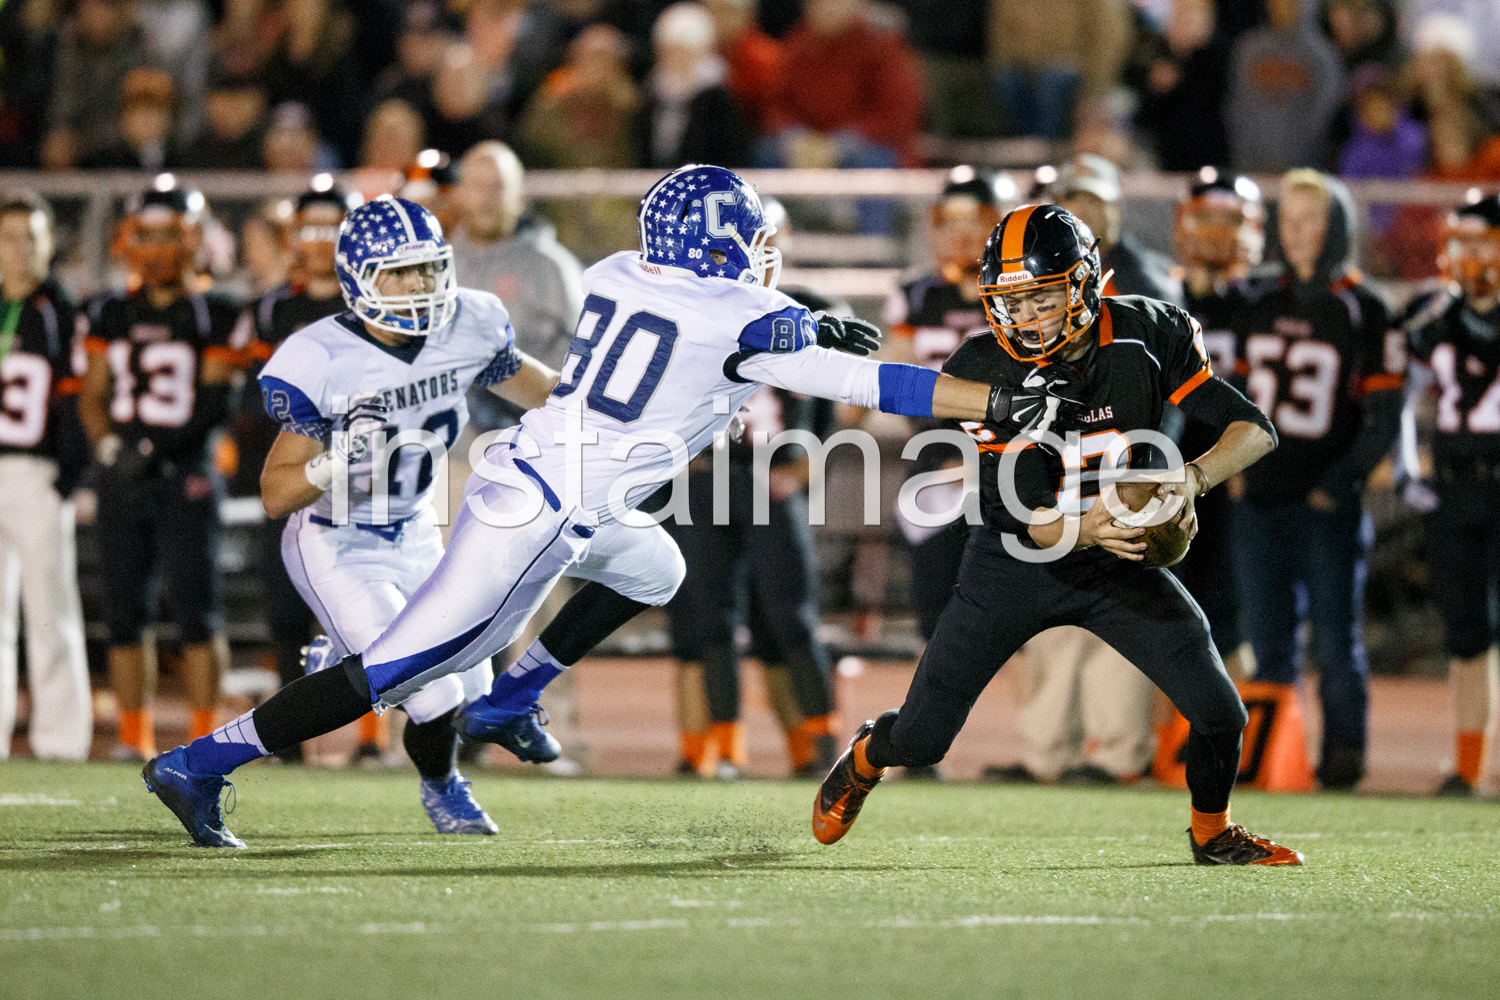 The Douglas Quarterback was elusive all night extending quite a lot of plays and converting them into big gains for the Tigers